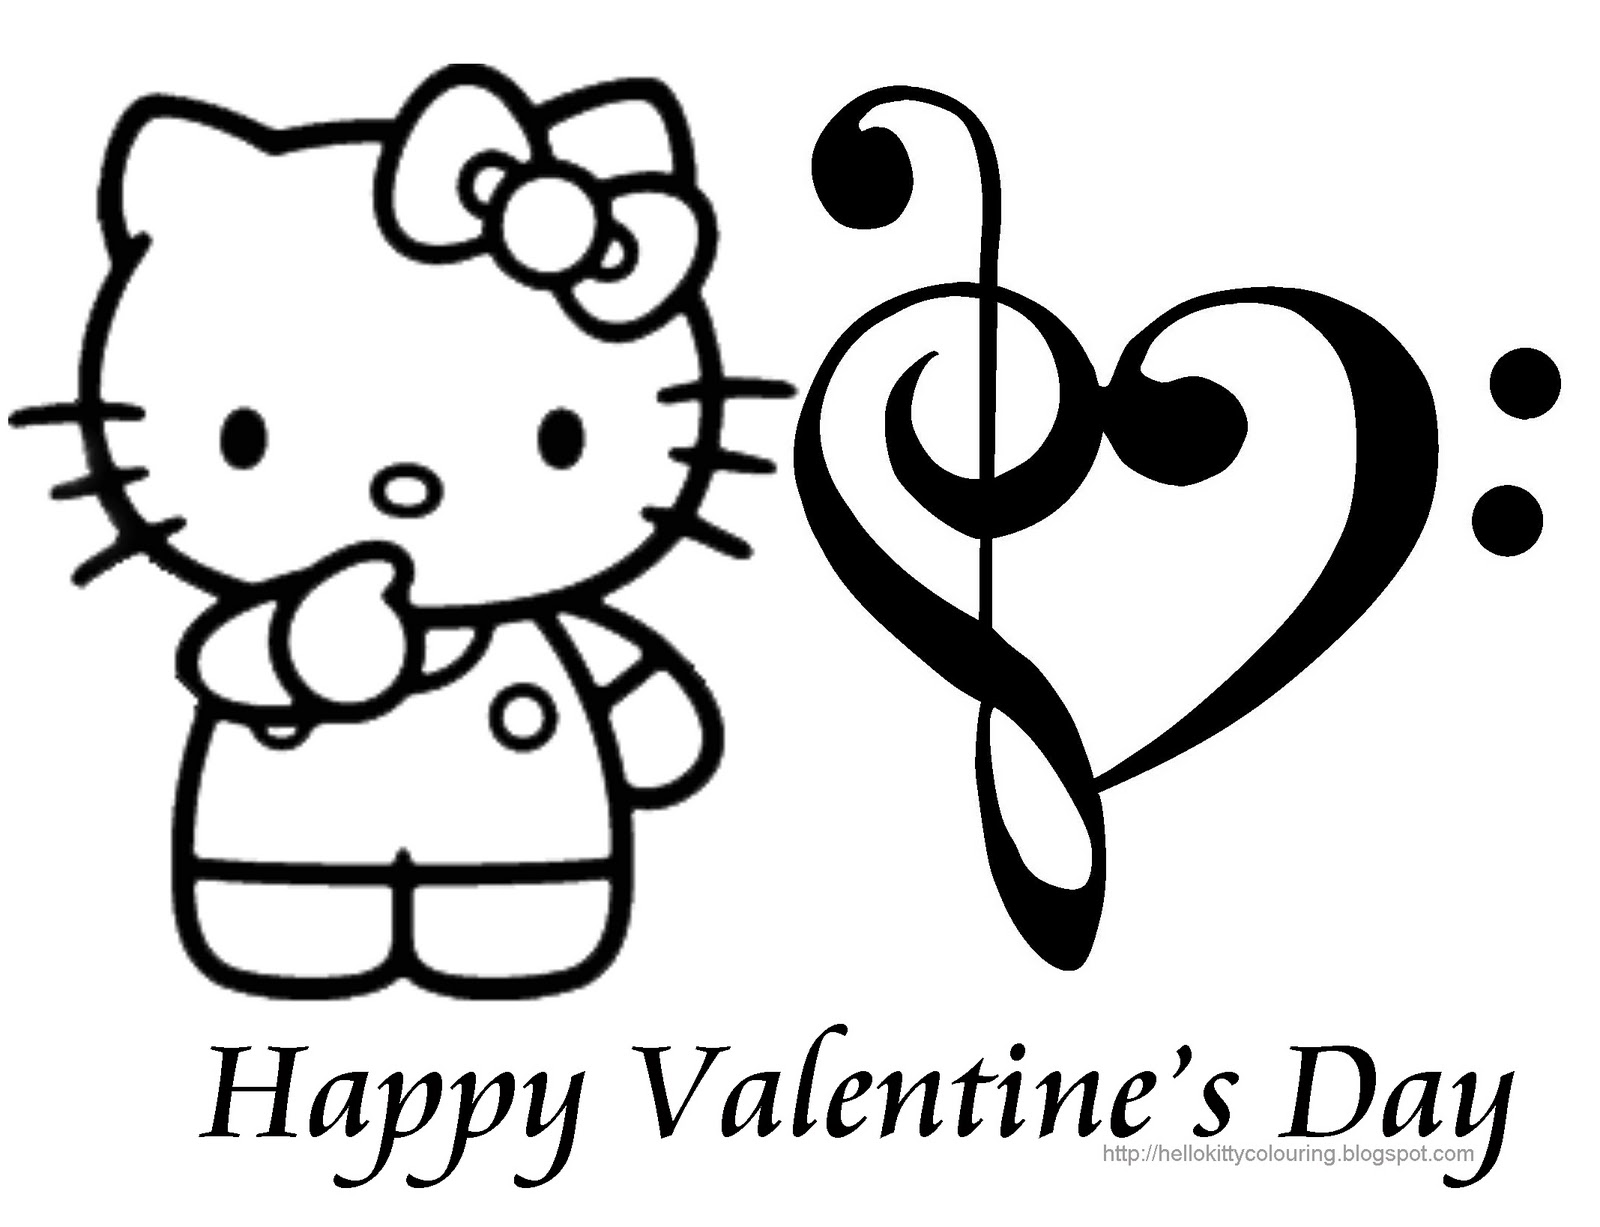 February 2012 | Hello Kitty Forever